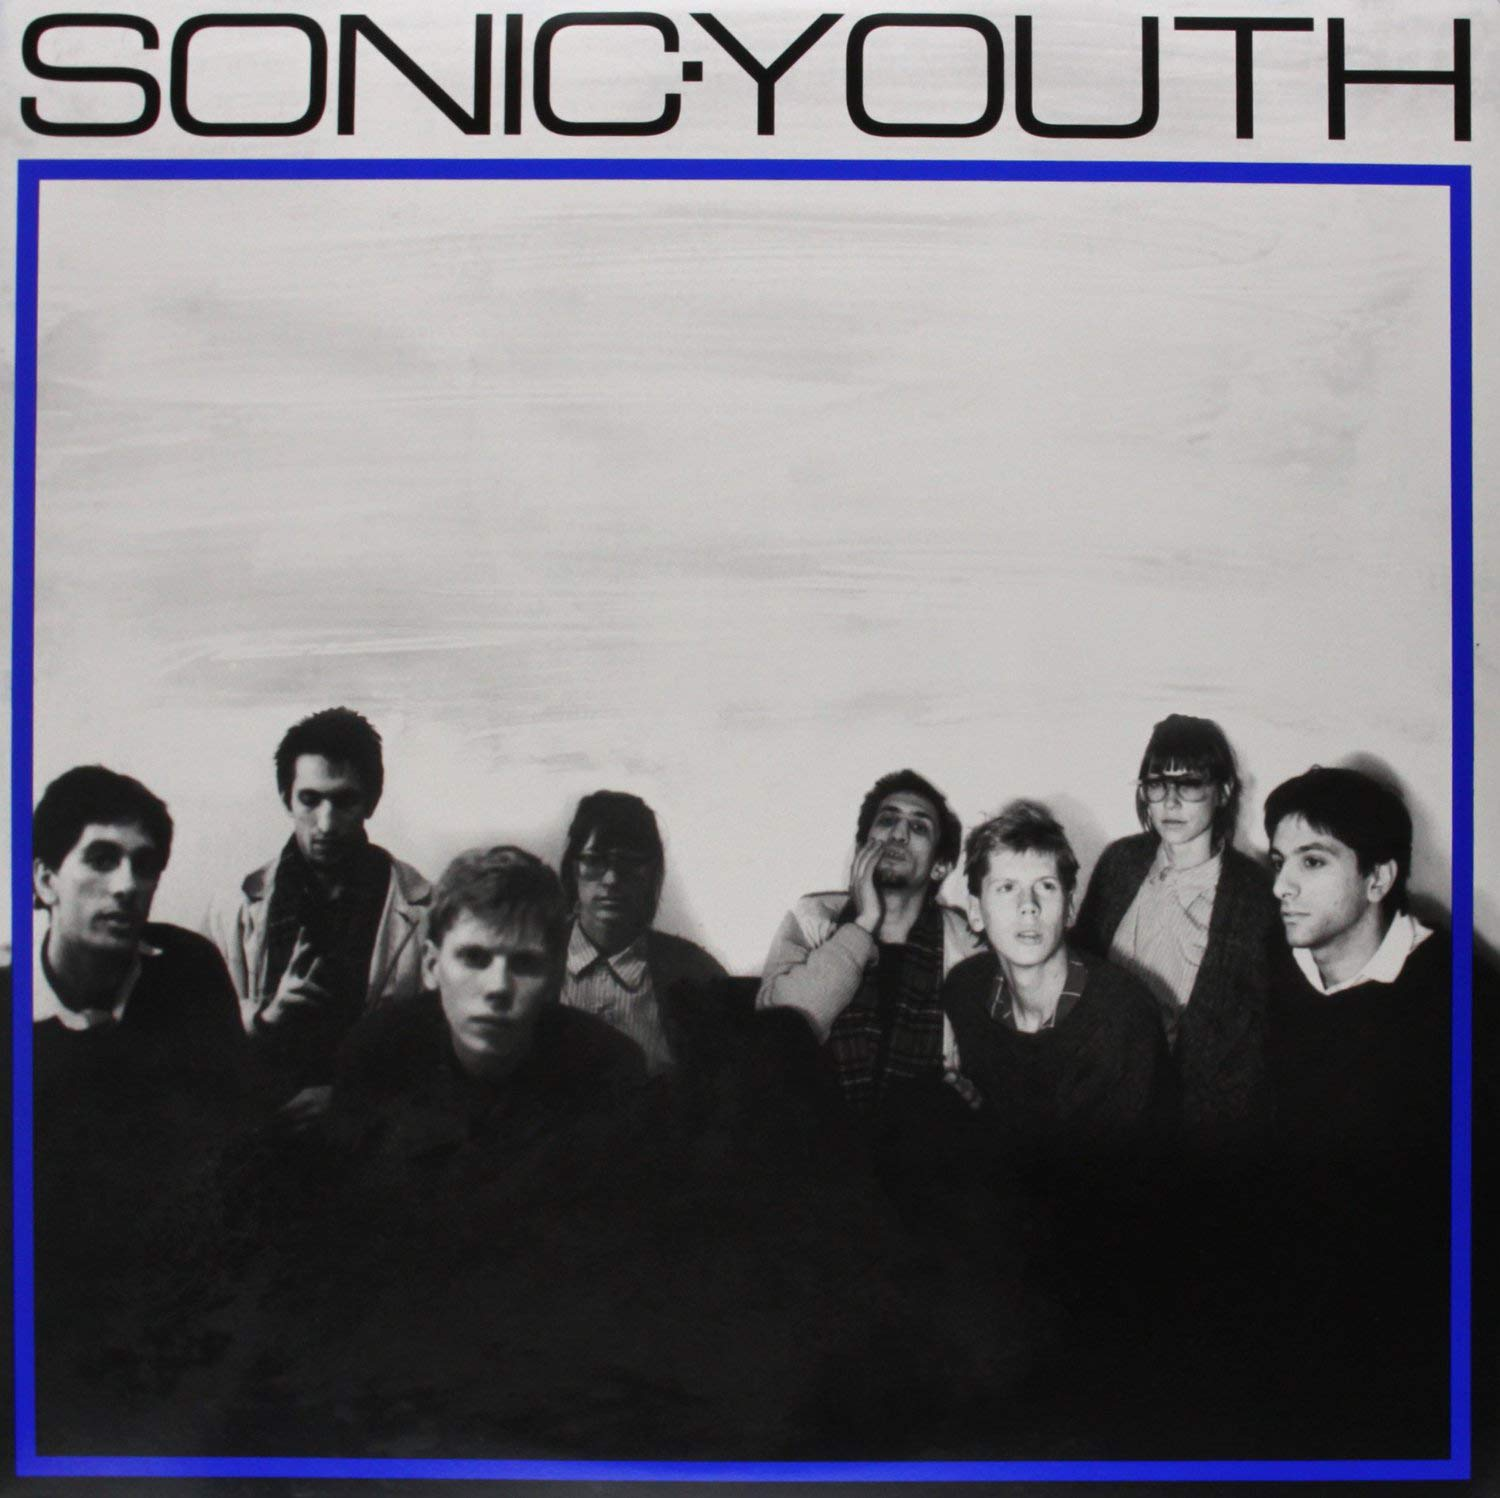 Sonic Youth - Sonic Youth [2xLP]